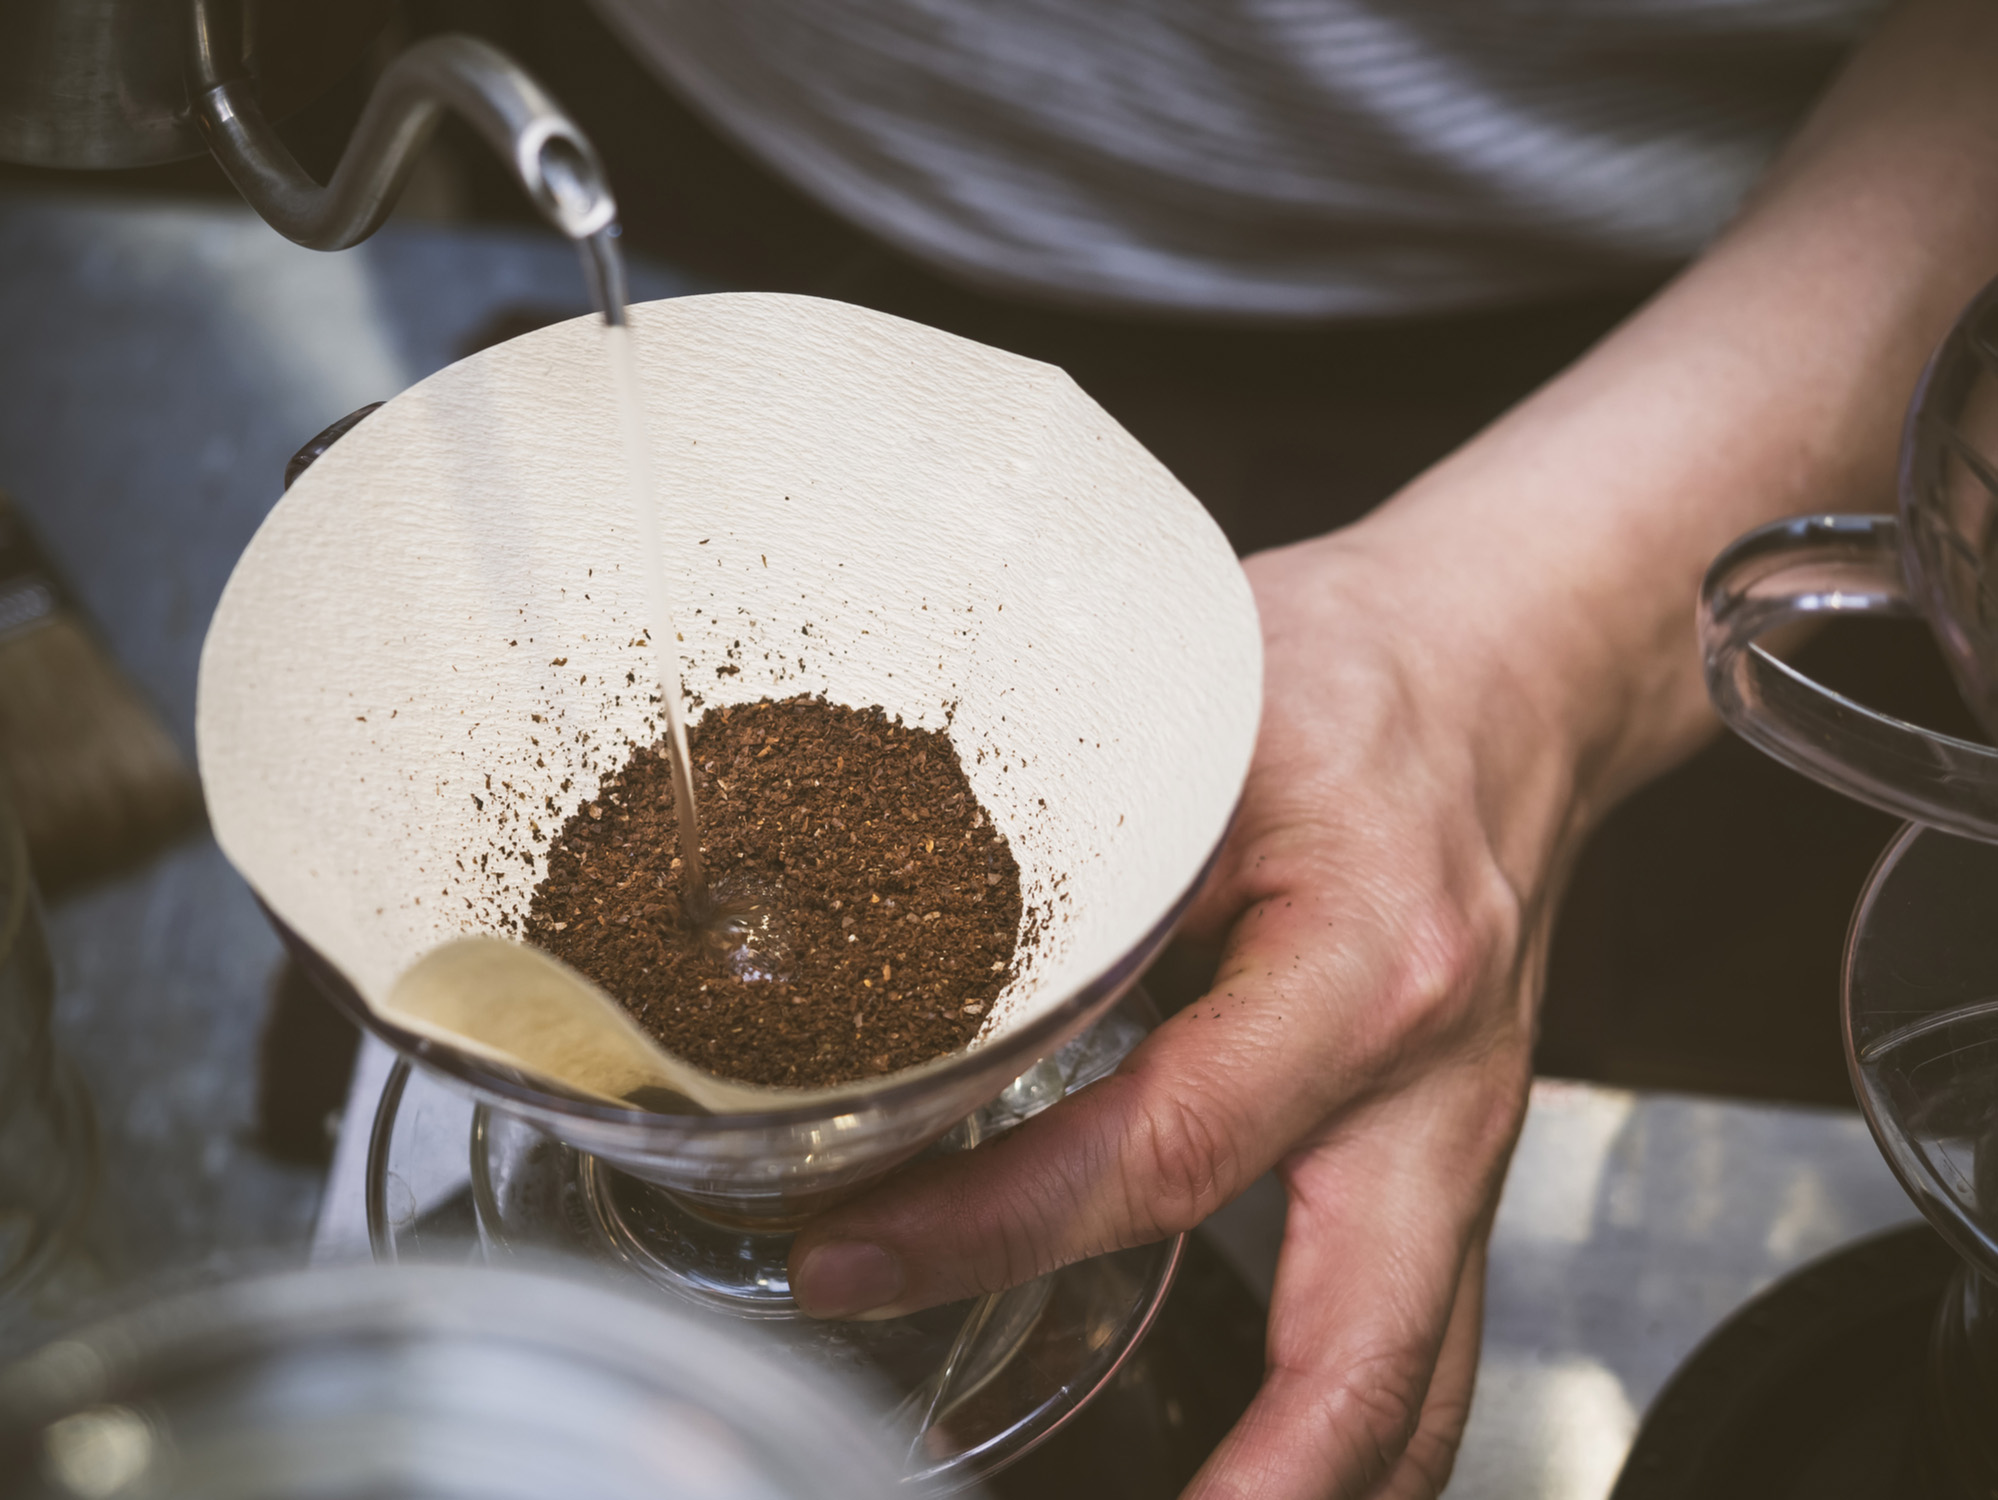 Hand drip coffee pouring - 72 ppi